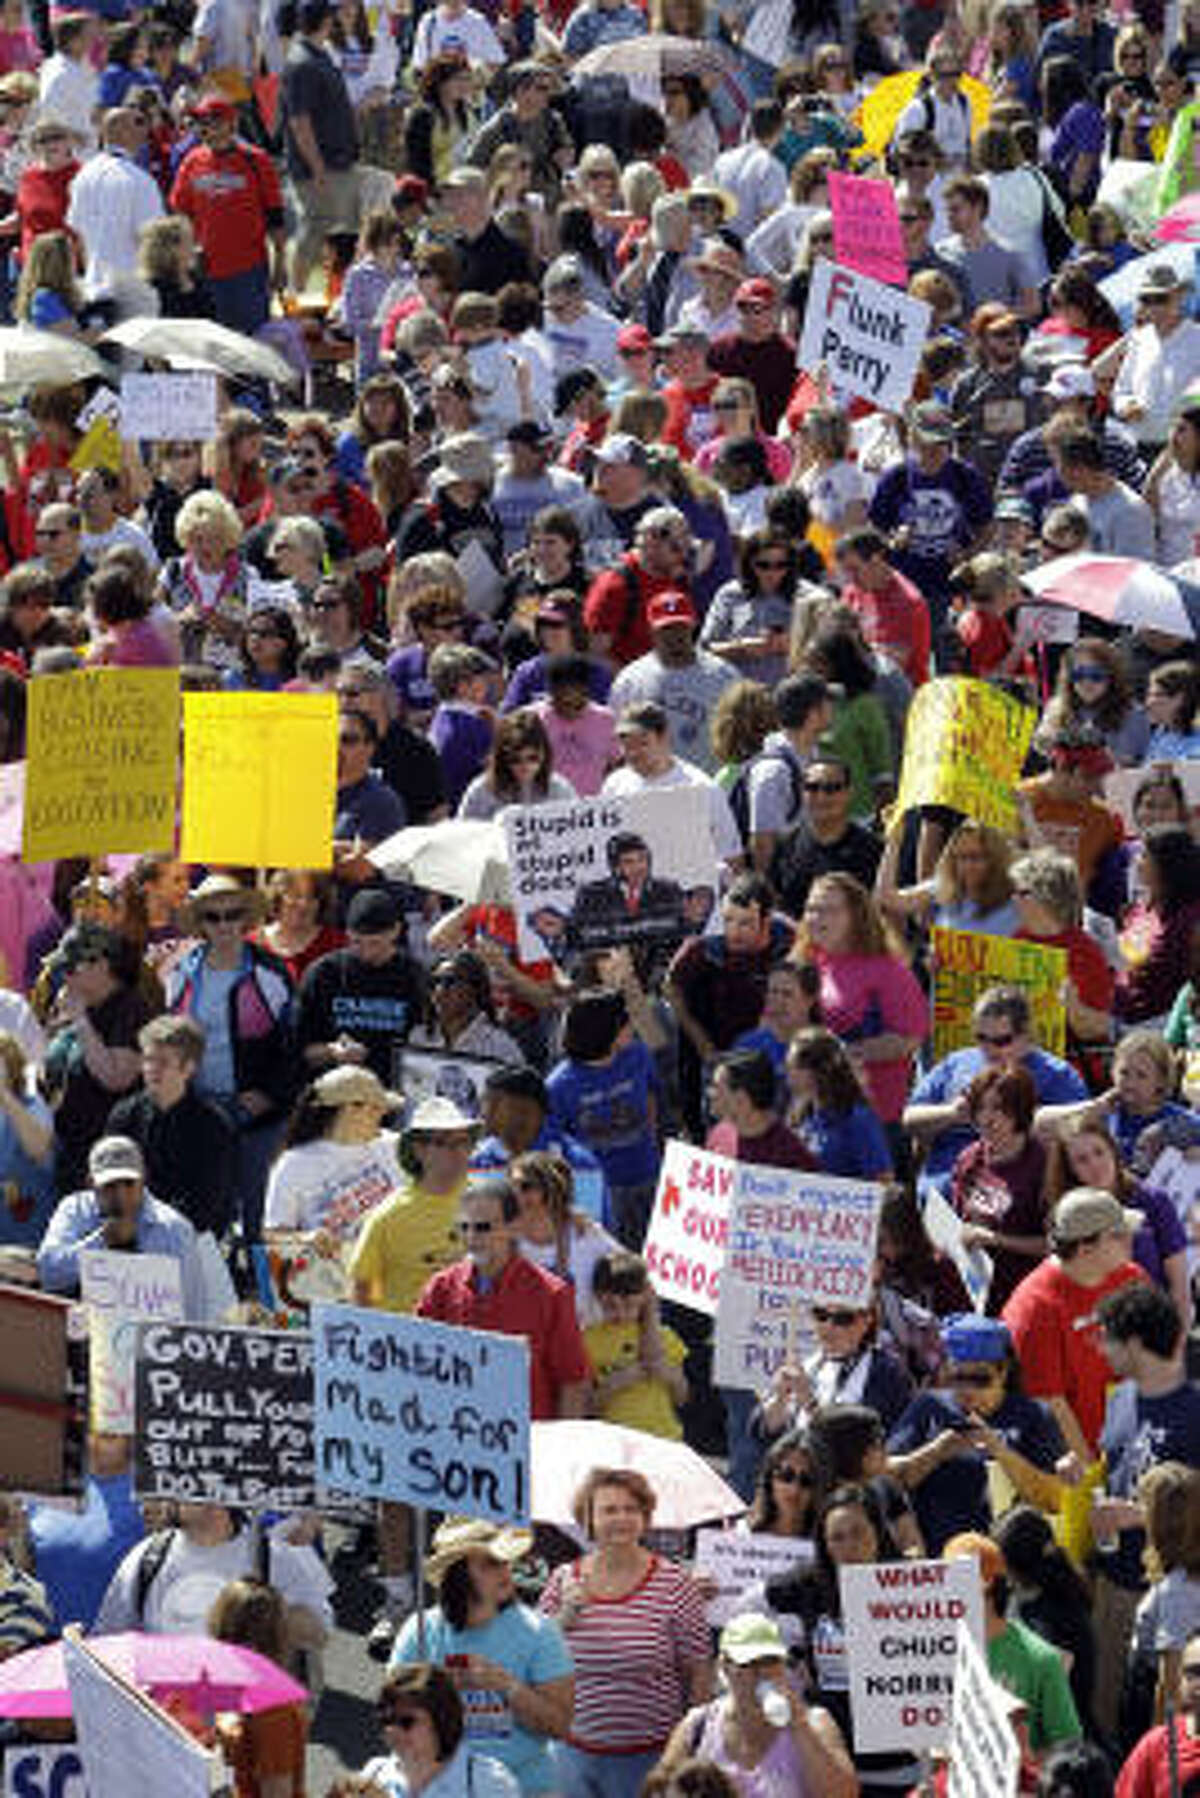 Rally organizers said at least 11,000 demonstrators gathered Saturday at the Texas Capitol, all had the same message: Don't balance the state's books on the backs of students.